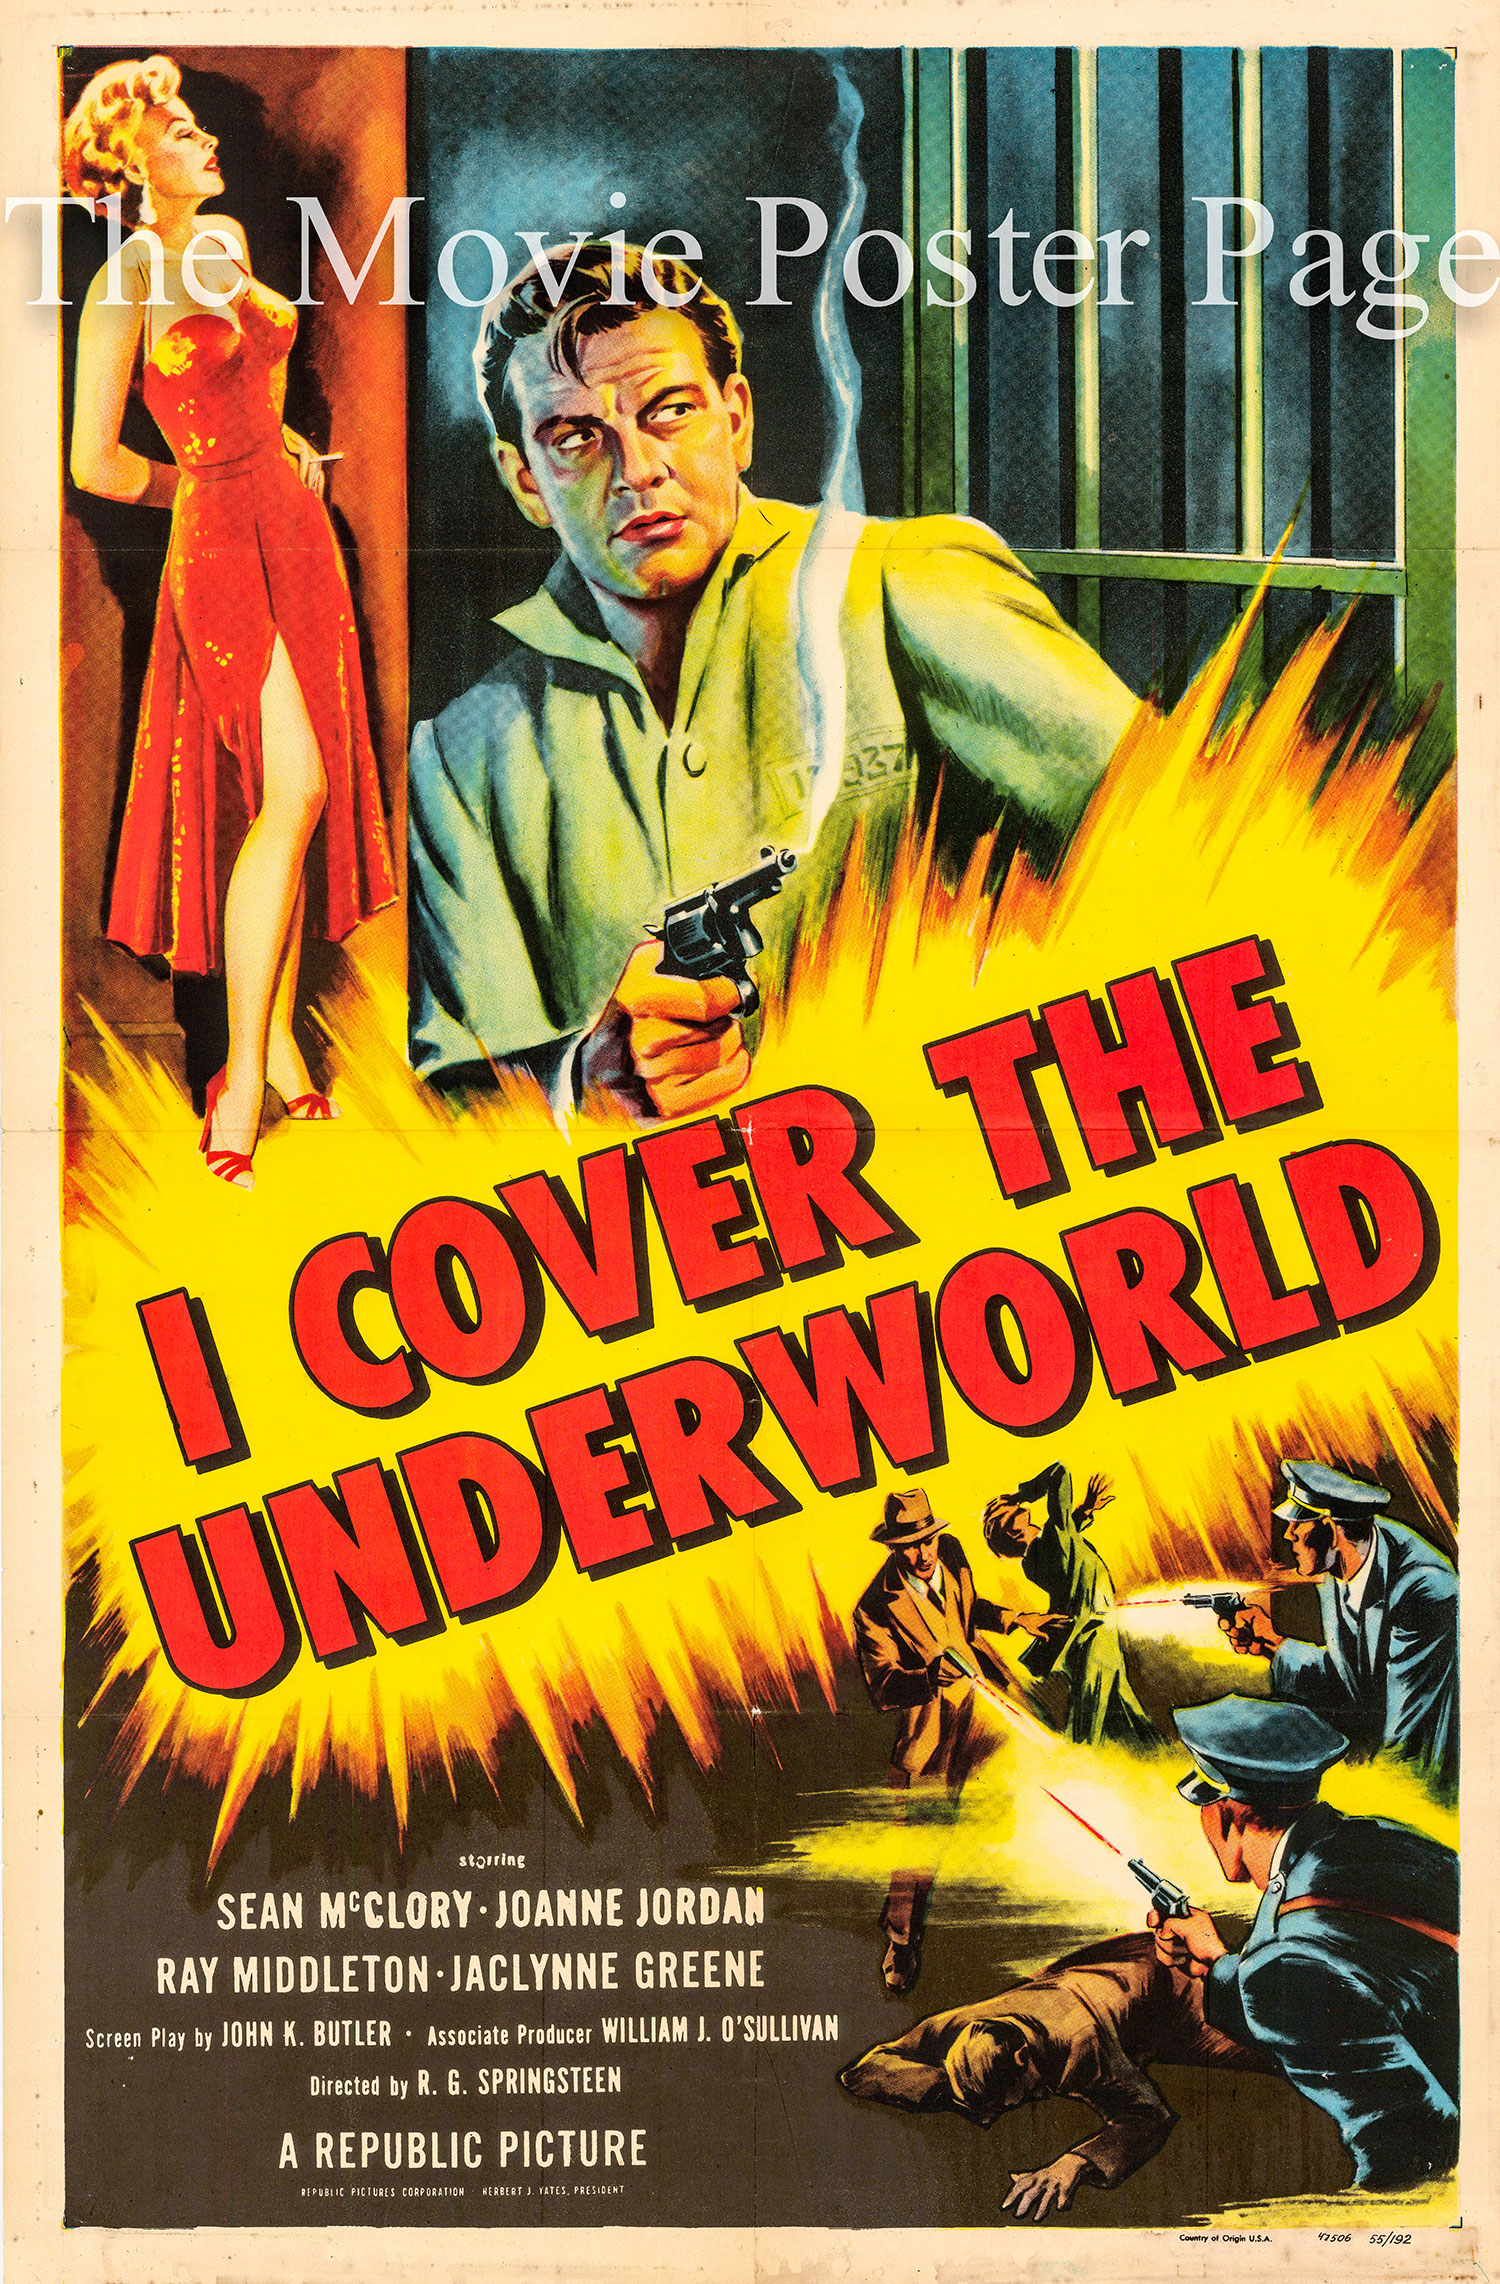 Pictured is a US one-sheet promotional poster for the 1955 R.G. Springsteen film I Cover the Underworld starring Sean McClory.